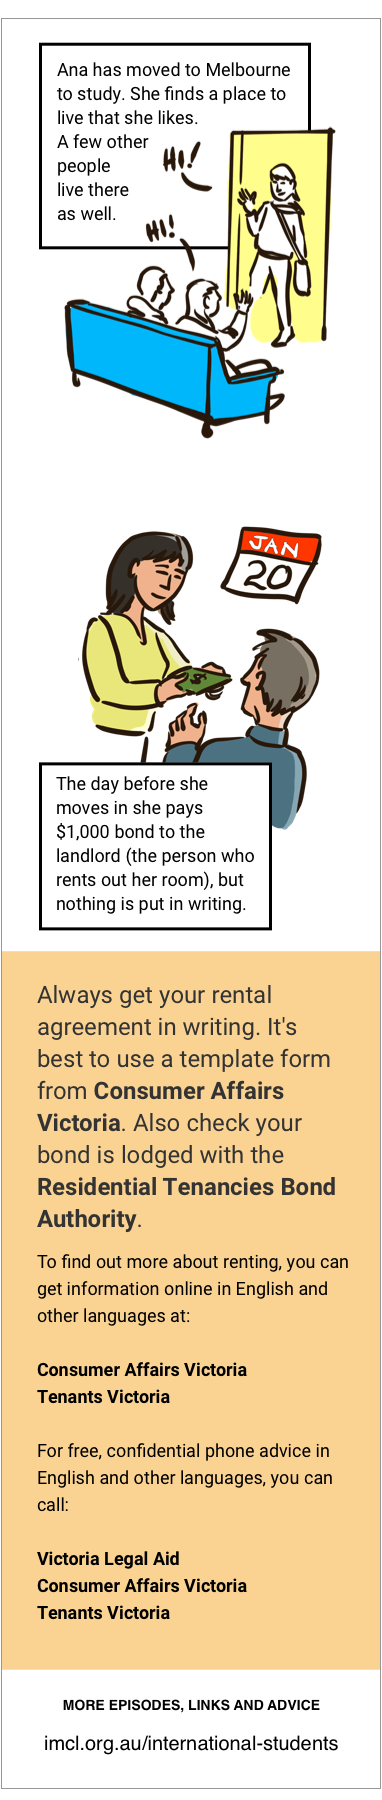 Episode 01: Making a rental agreement